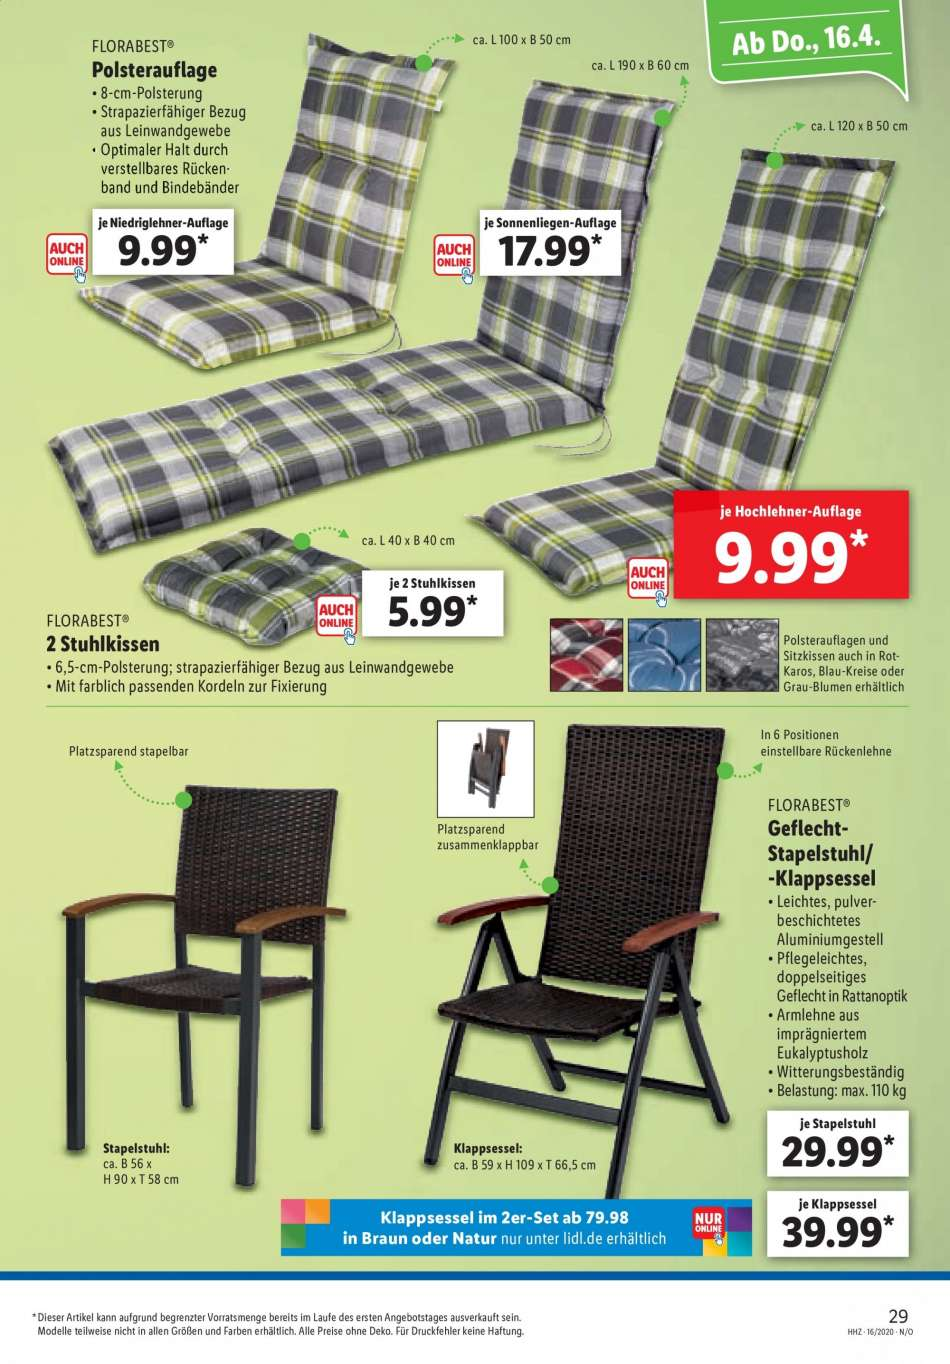 Full Size of Sonnenliege Lidl Wohnzimmer Sonnenliege Lidl